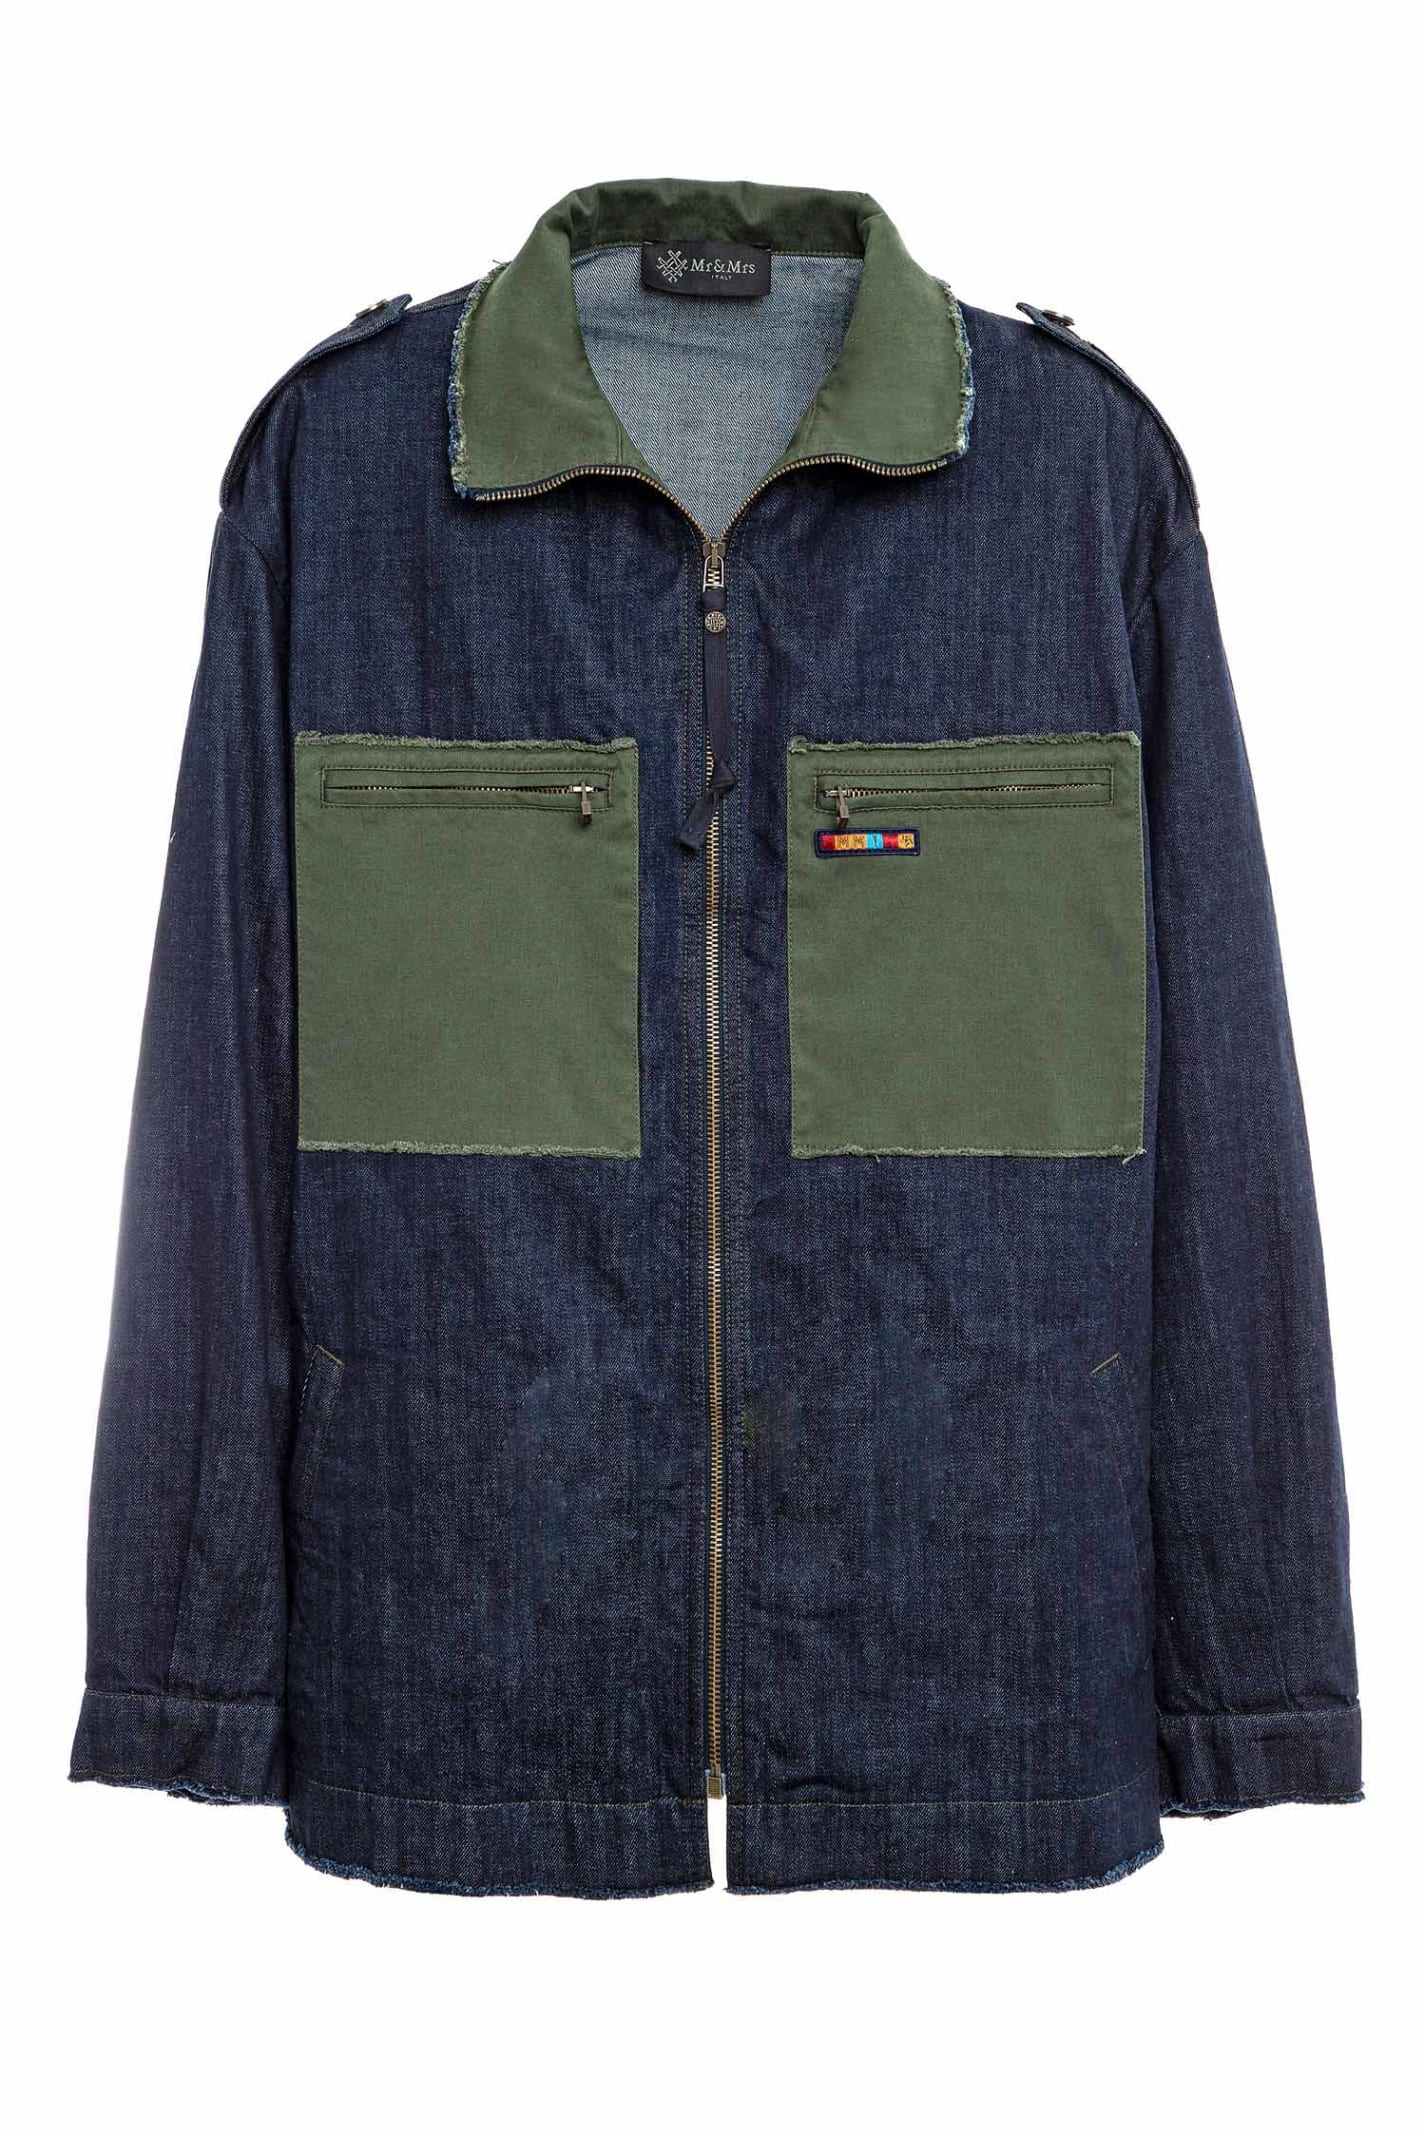 Denim And Cottoncavalry Work Jacket For Man